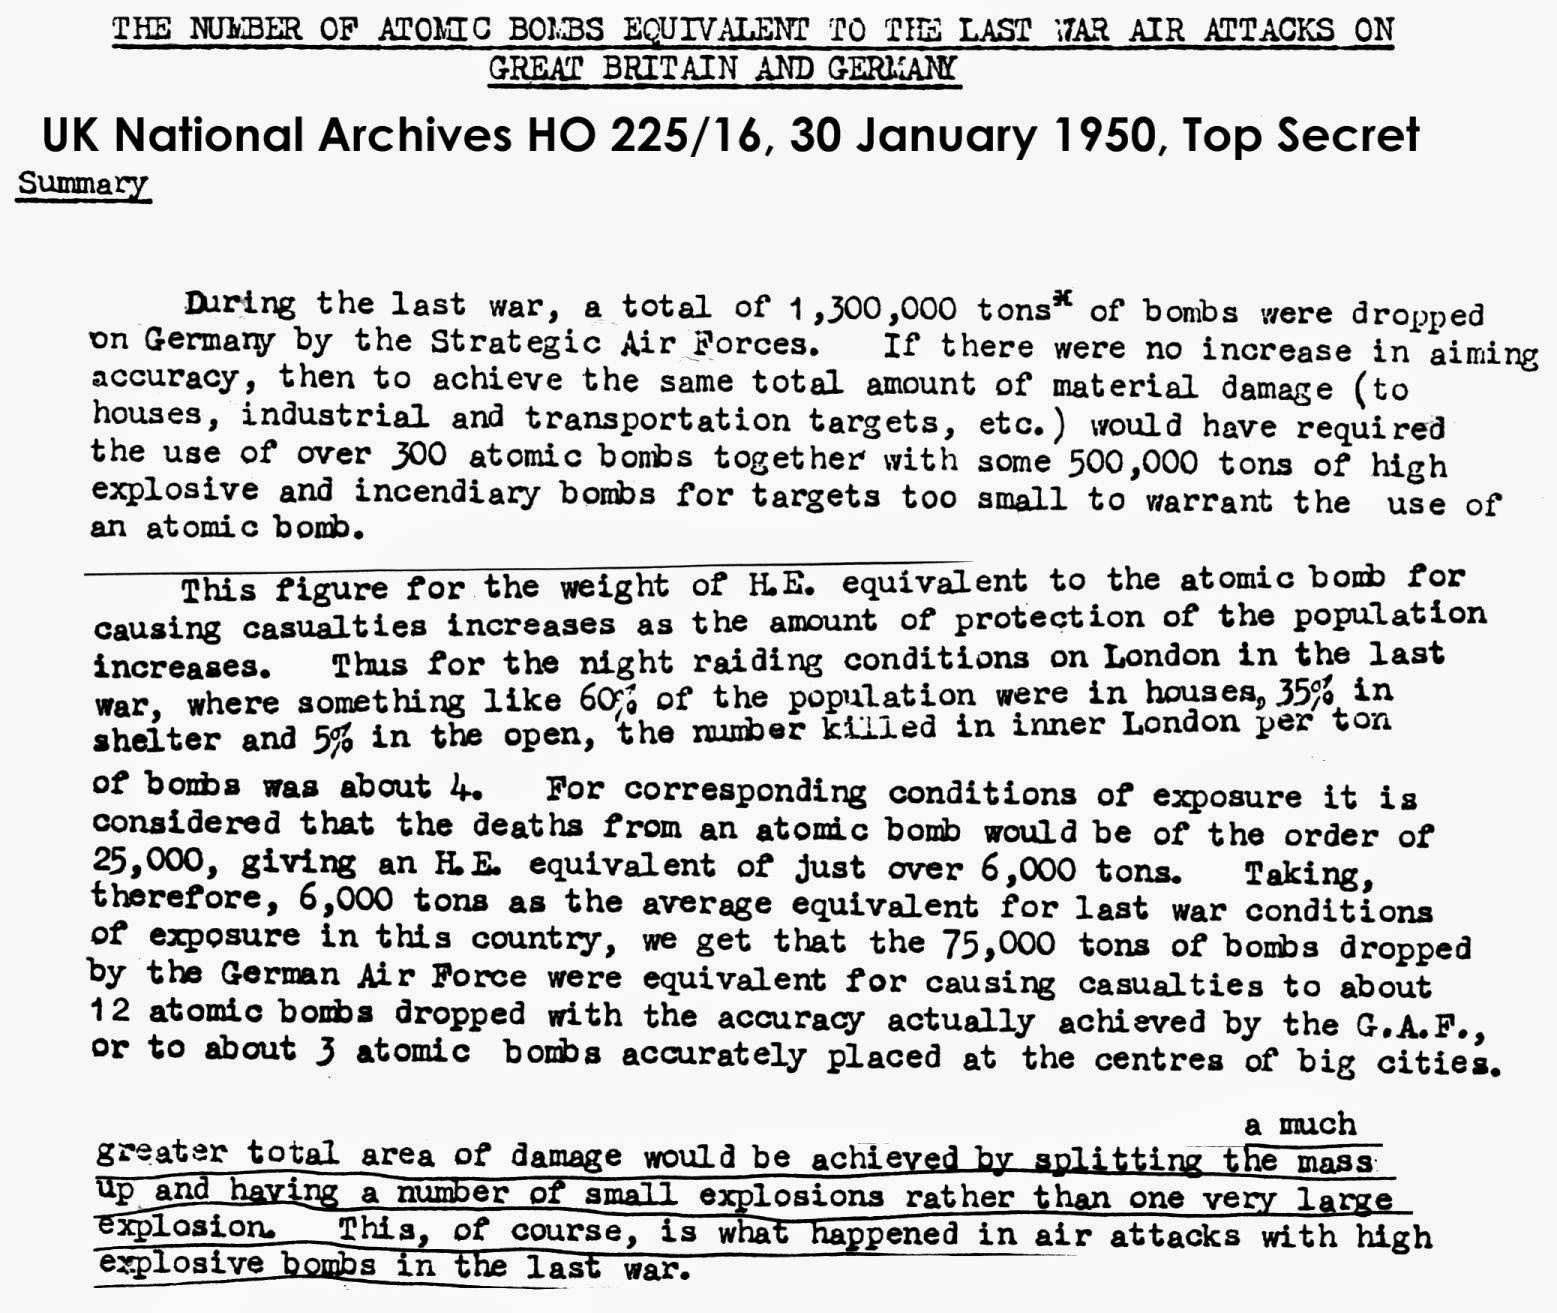 013 Numberofatomicbombs1950 Jpg Atomic Bomb Essay Shocking Outline Conclusion Good Title For Full